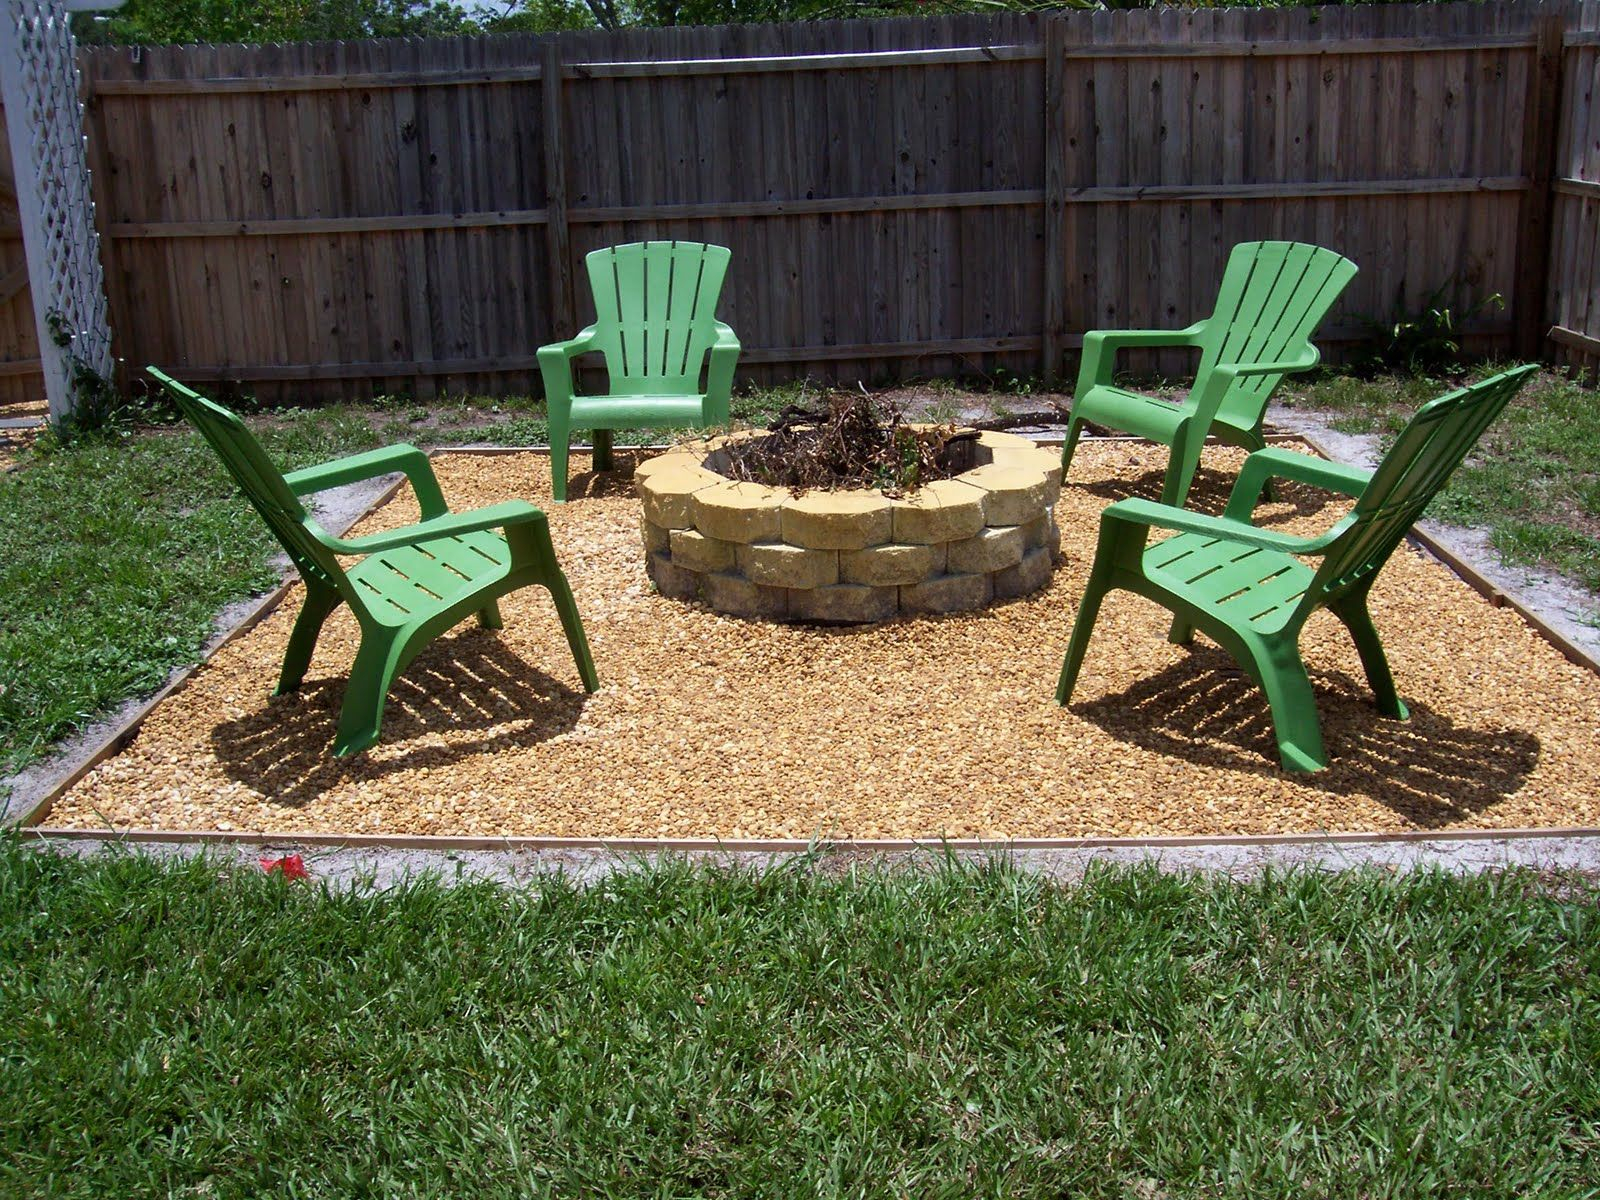 Mesmerizing Fire Pit Ideas For Small Backyard Pictures Ideas throughout 15 Smart Concepts of How to Make Fire Pit Ideas For Small Backyard